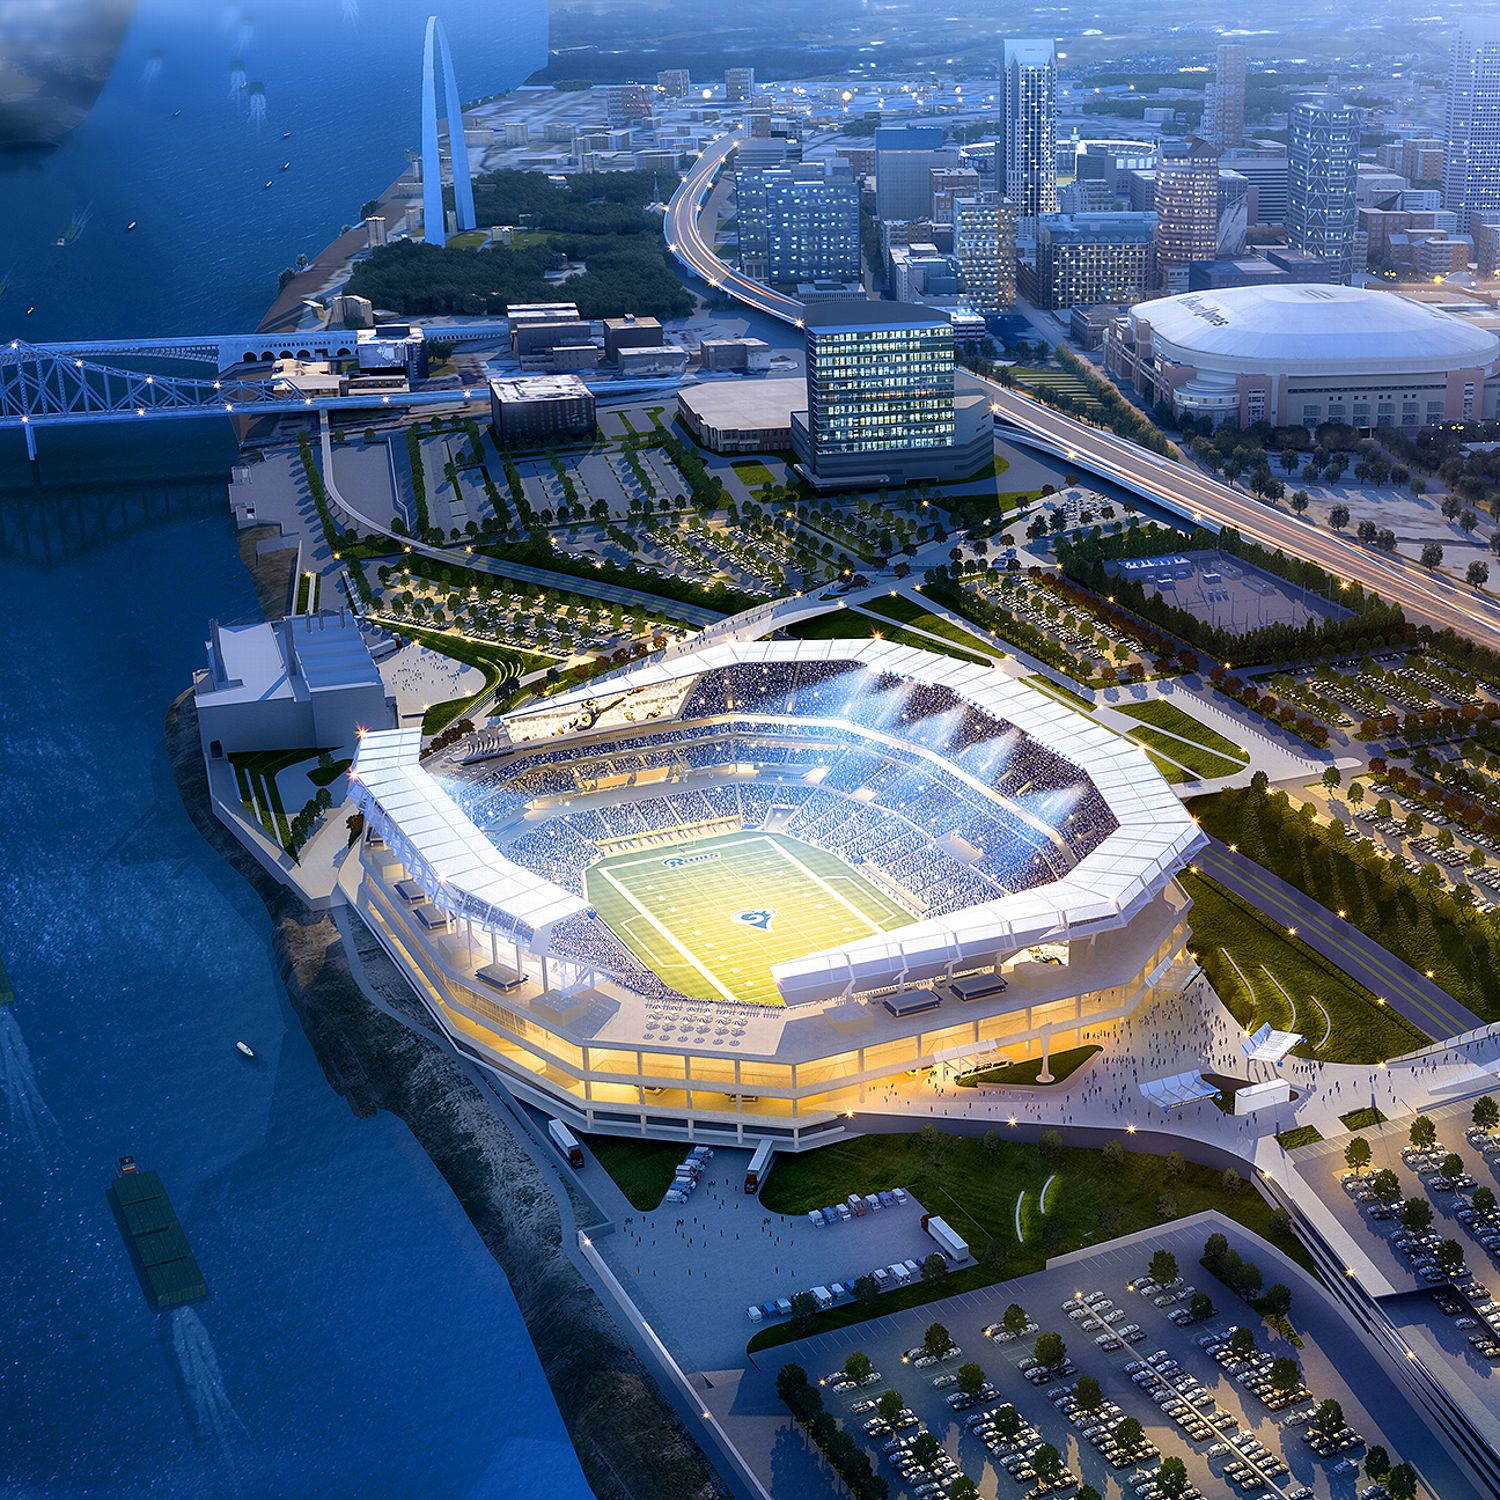 La Rams New Stadium: Examining The Candidates For The Next Round Of MLS